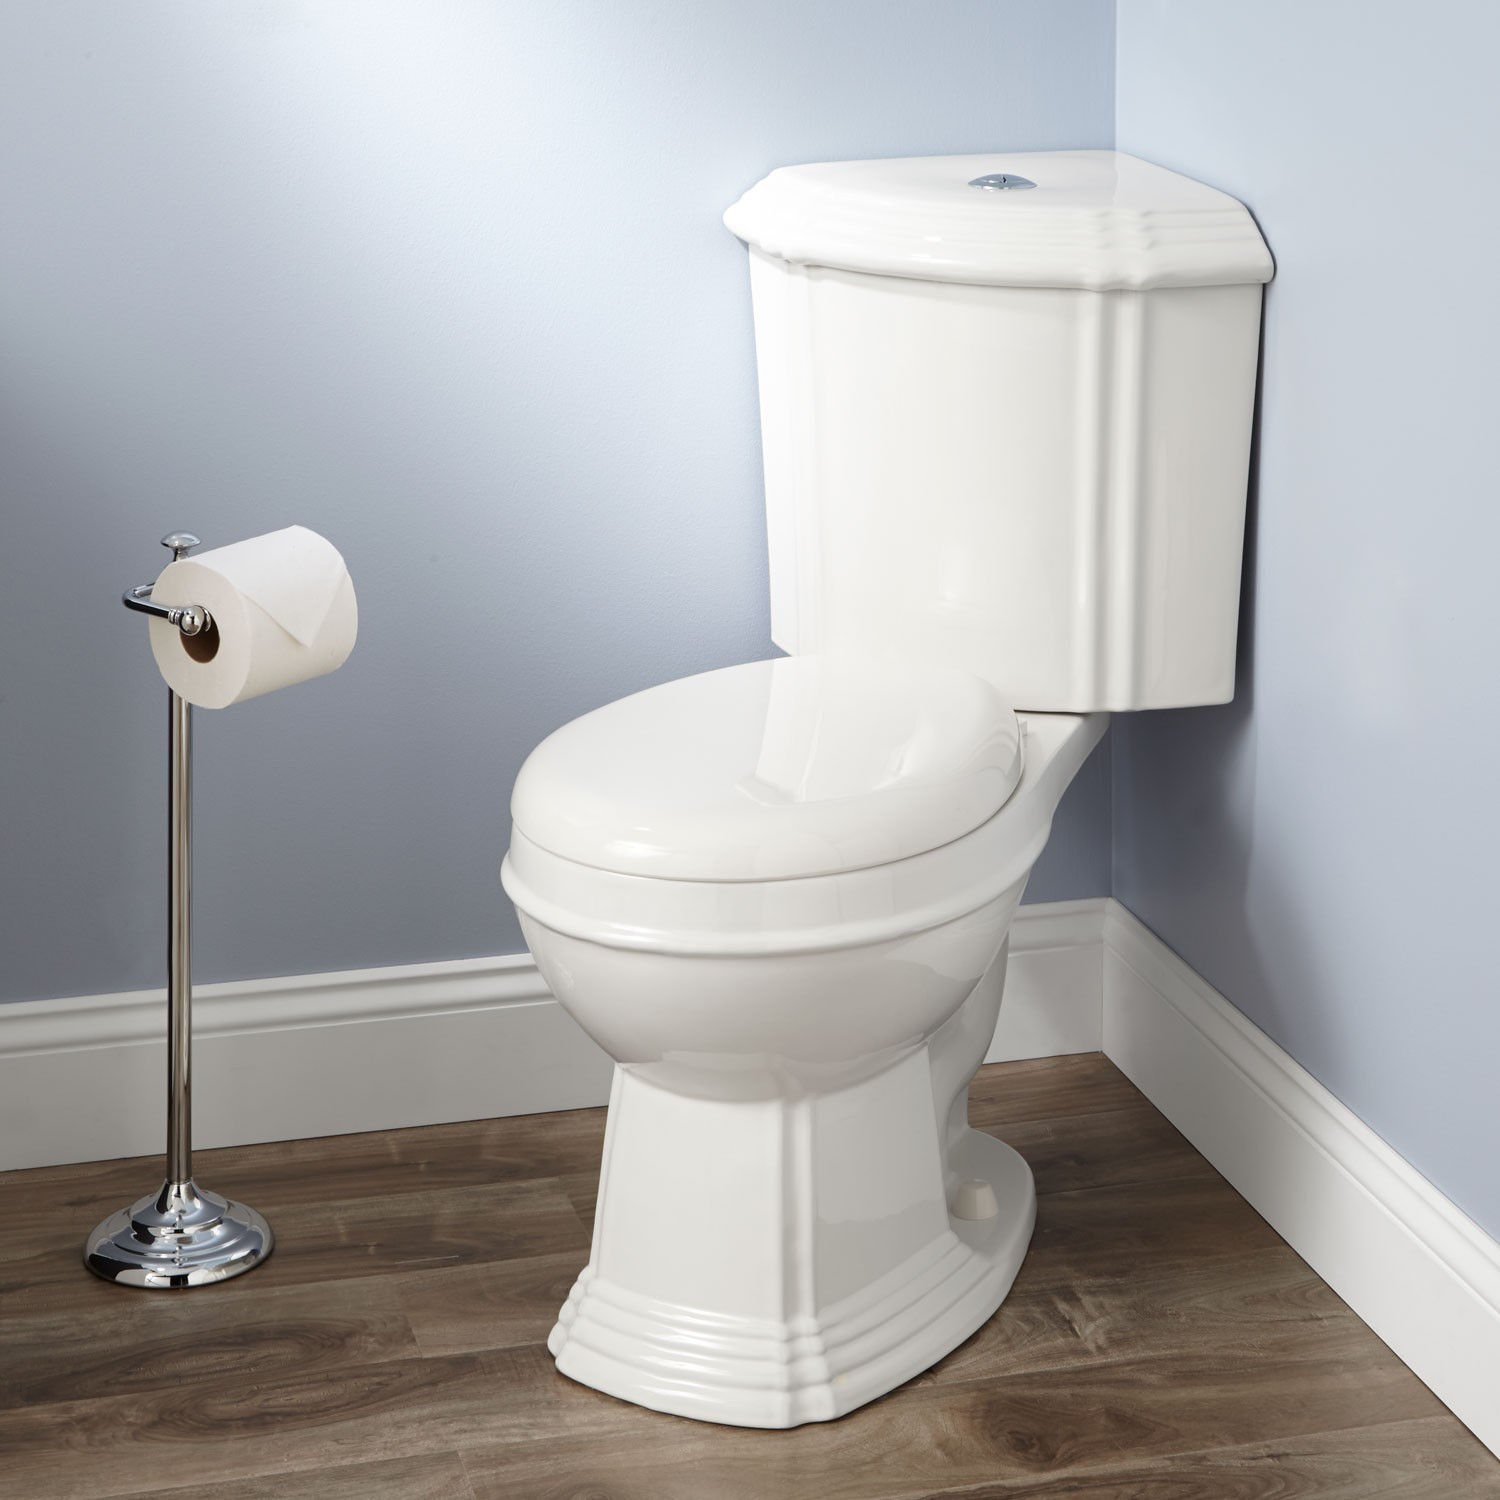 Cool toilet. What's even better is ensuring your house doesn't smell like one.